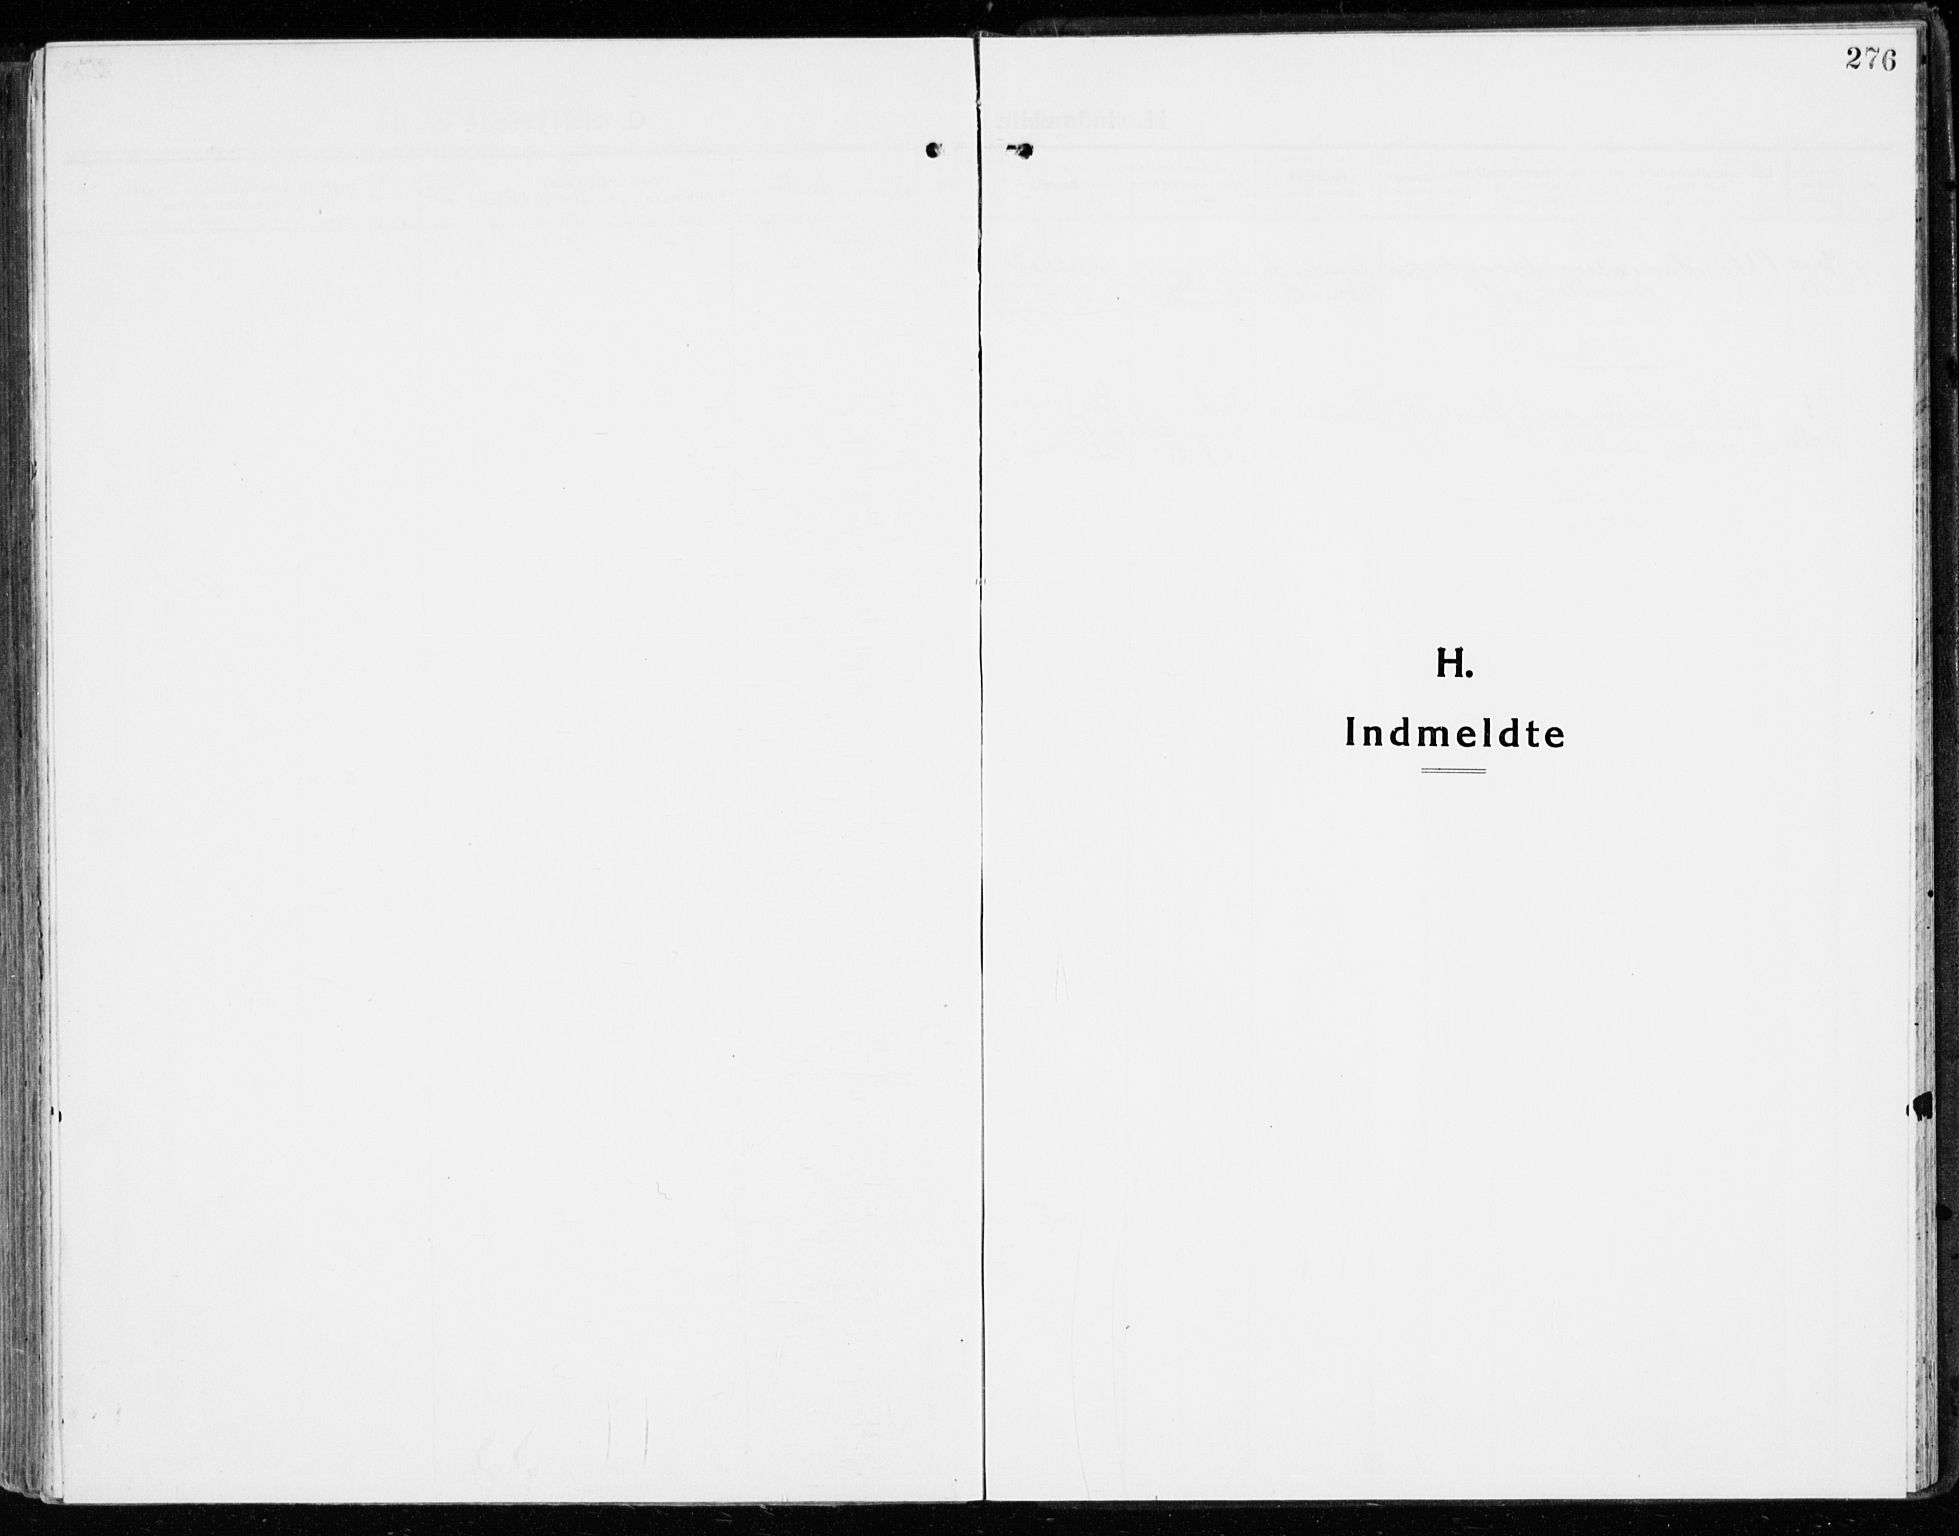 SAH, Stange prestekontor, K/L0025: Parish register (official) no. 25, 1921-1945, p. 276